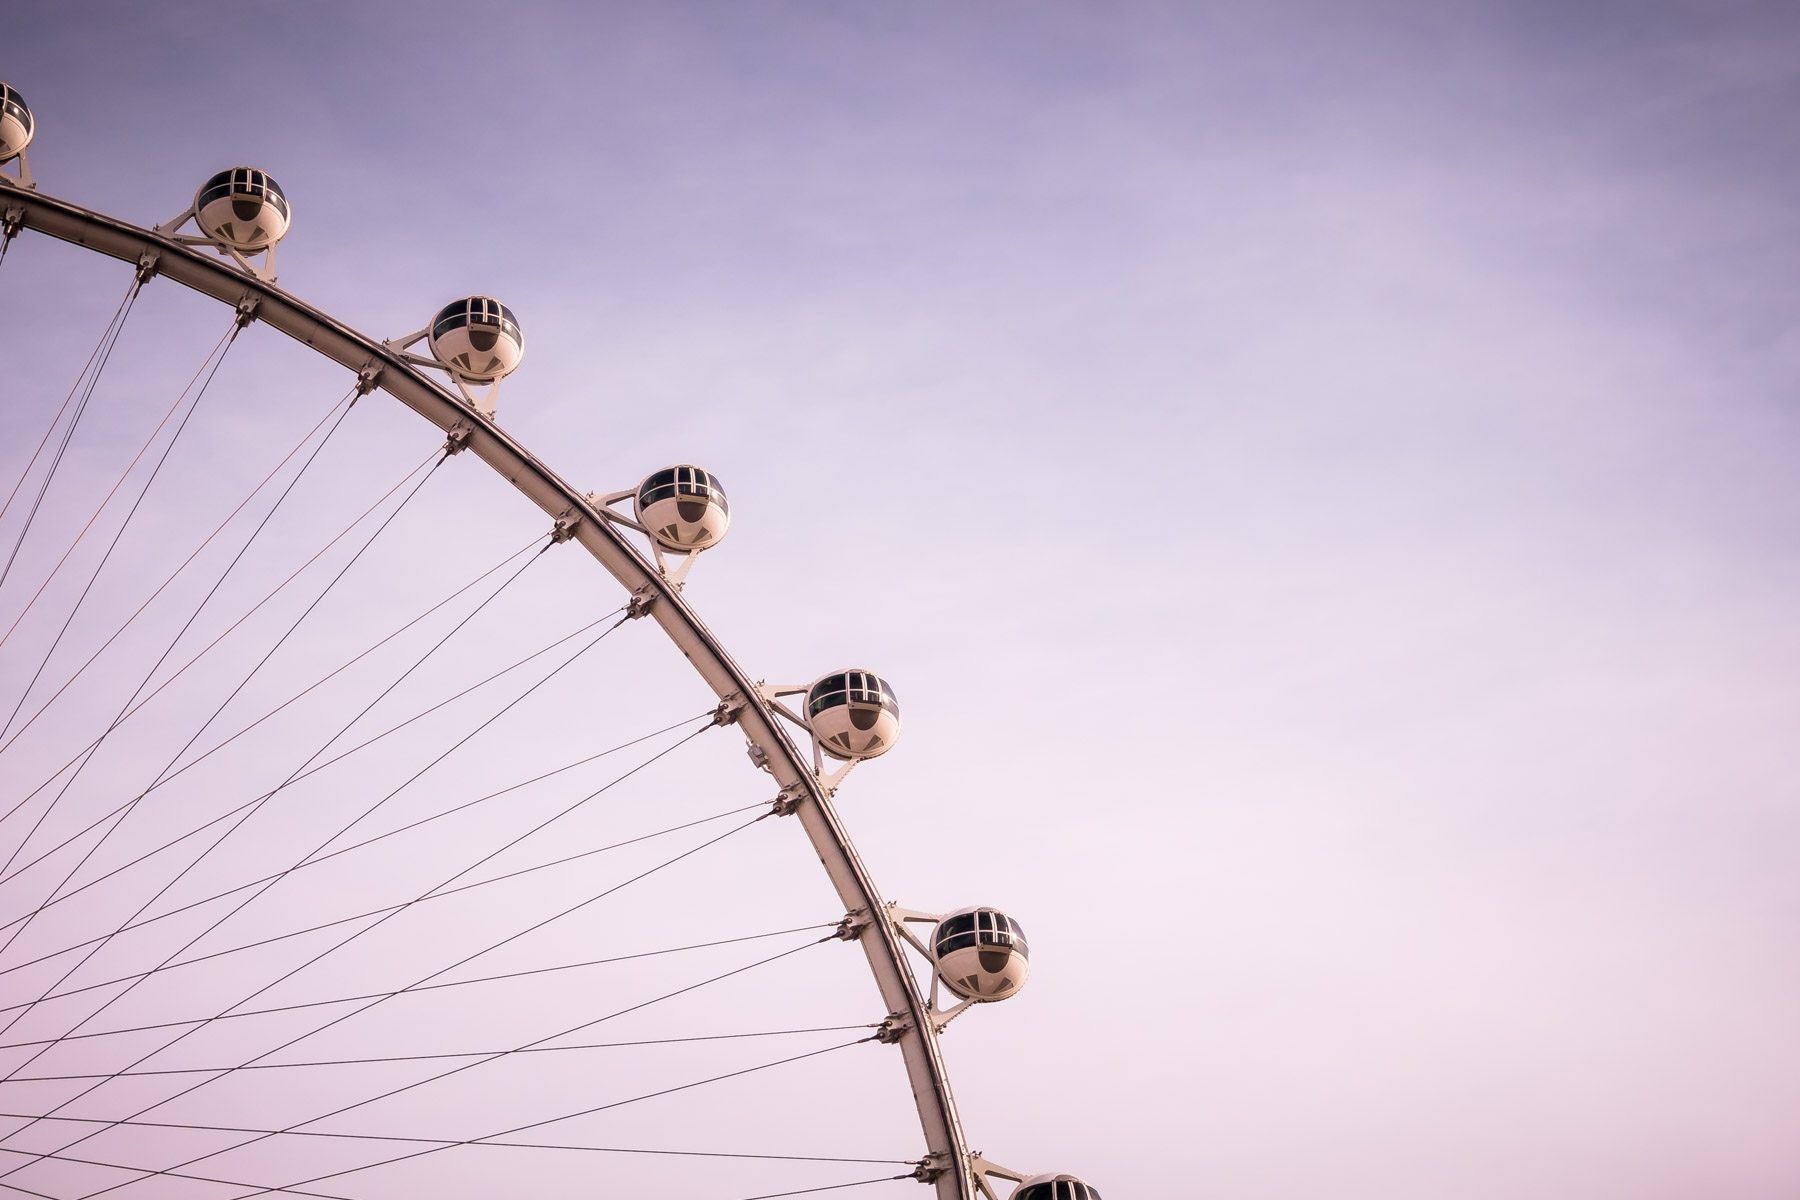 Detail of gondolas on the High Roller, the world's tallest observation wheel, sited adjacent to the Las Vegas Strip.